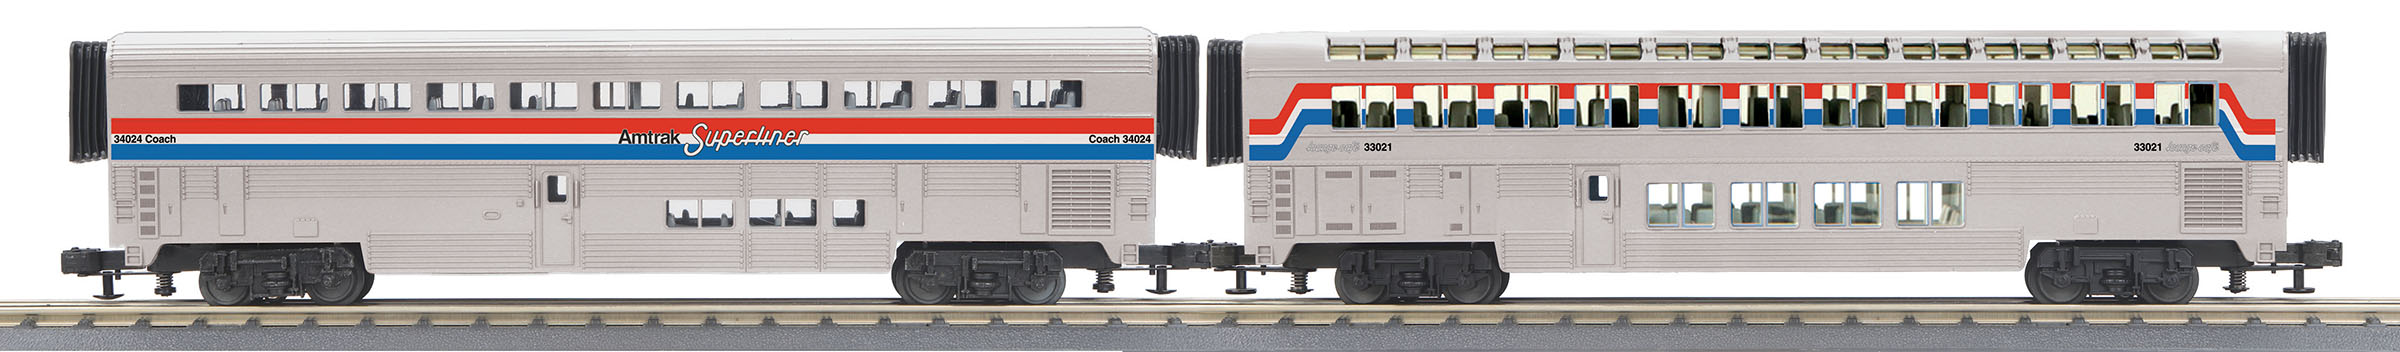 MTH306536 MTH Electric Trains O-31 SuperLiner Set, Amtrak/Phase III #4019 (2)